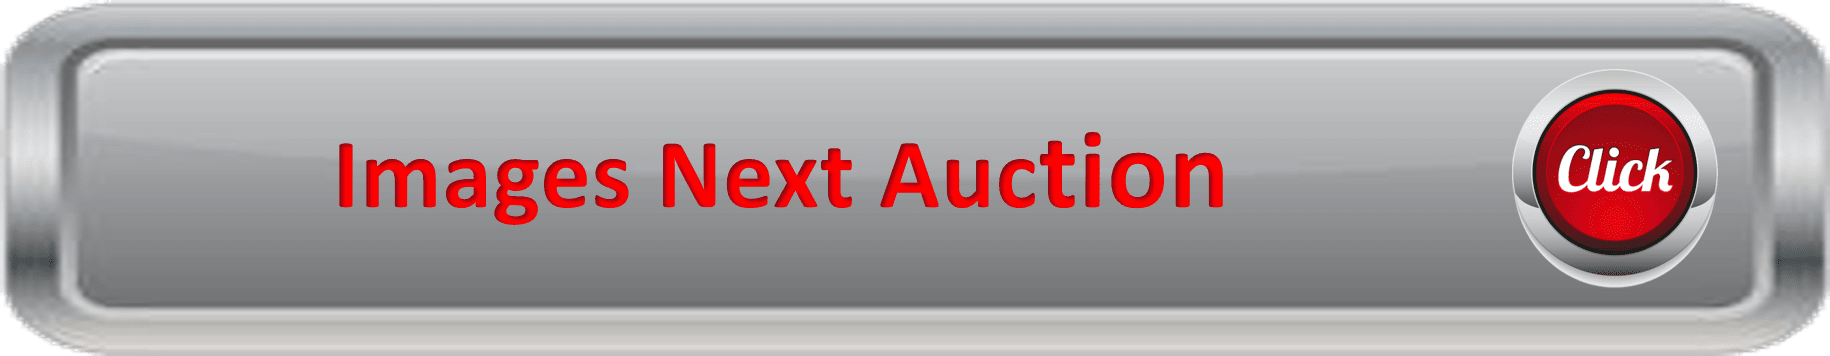 Hudson Valley Auctioneers Upcoming Auction